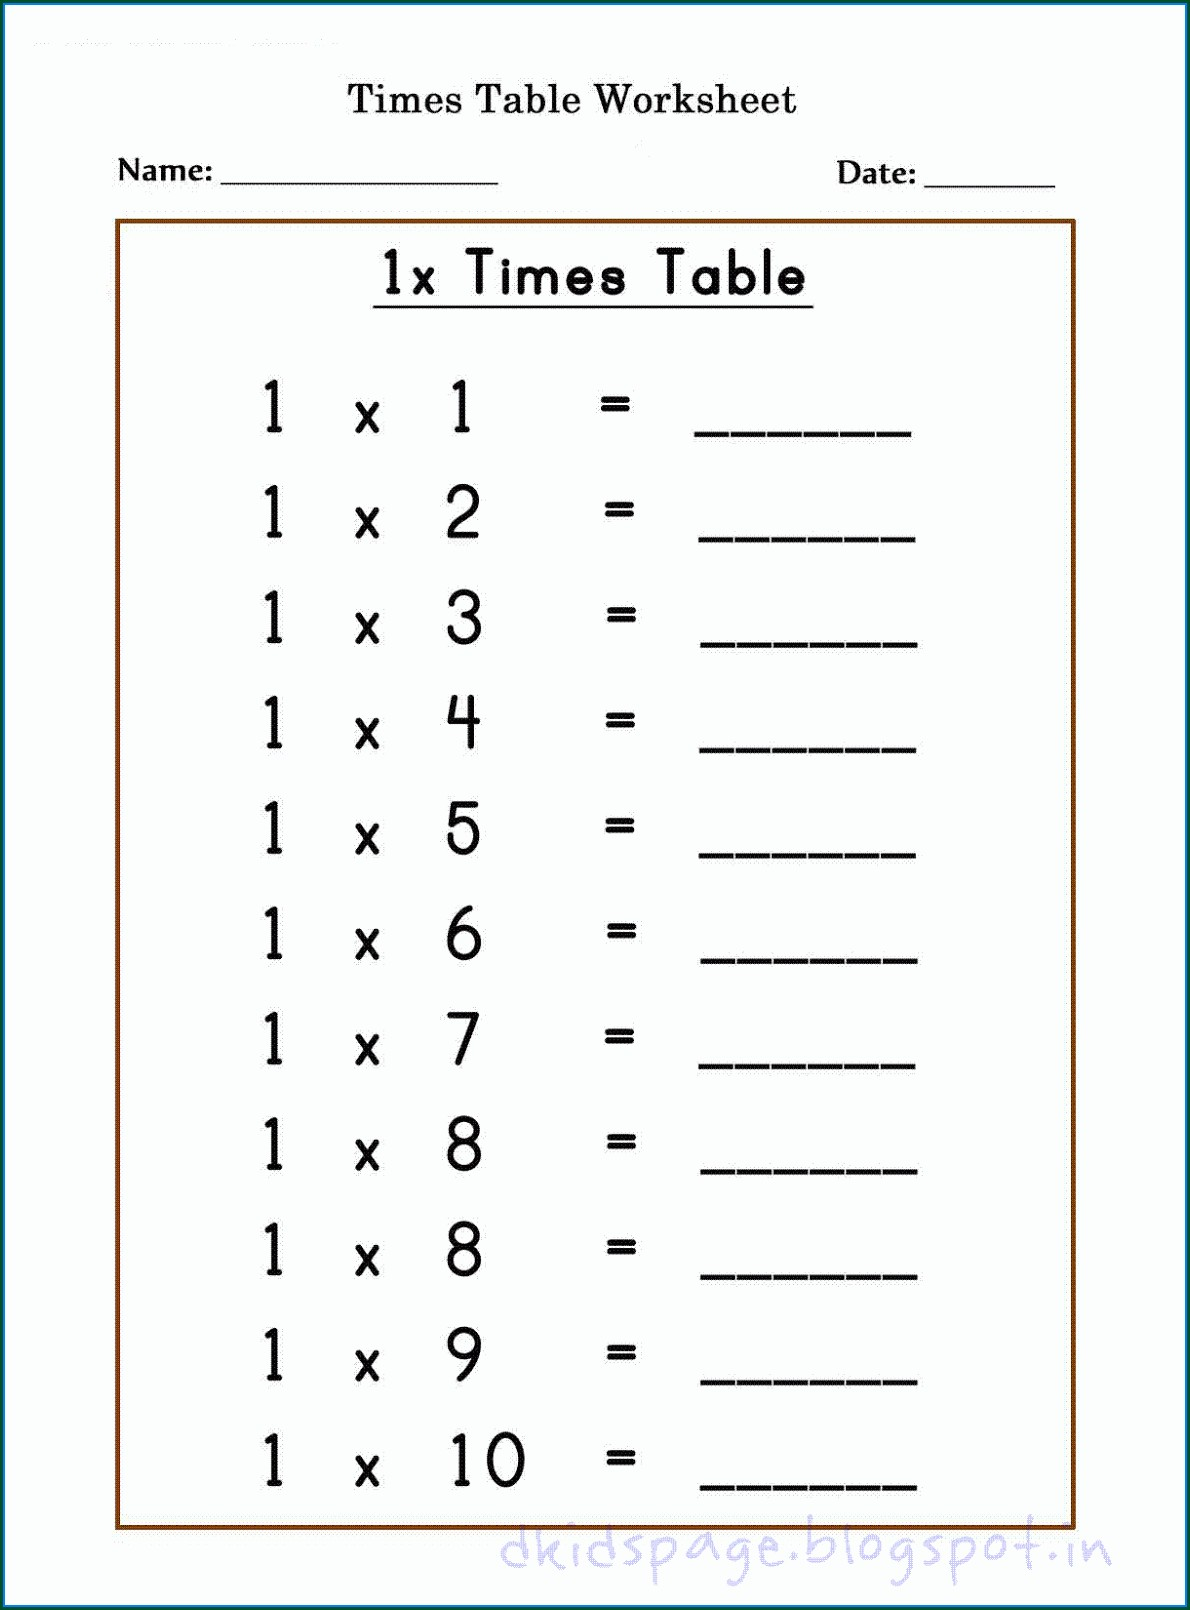 Time Table Worksheets 1 To 12 Worksheet Resume Examples